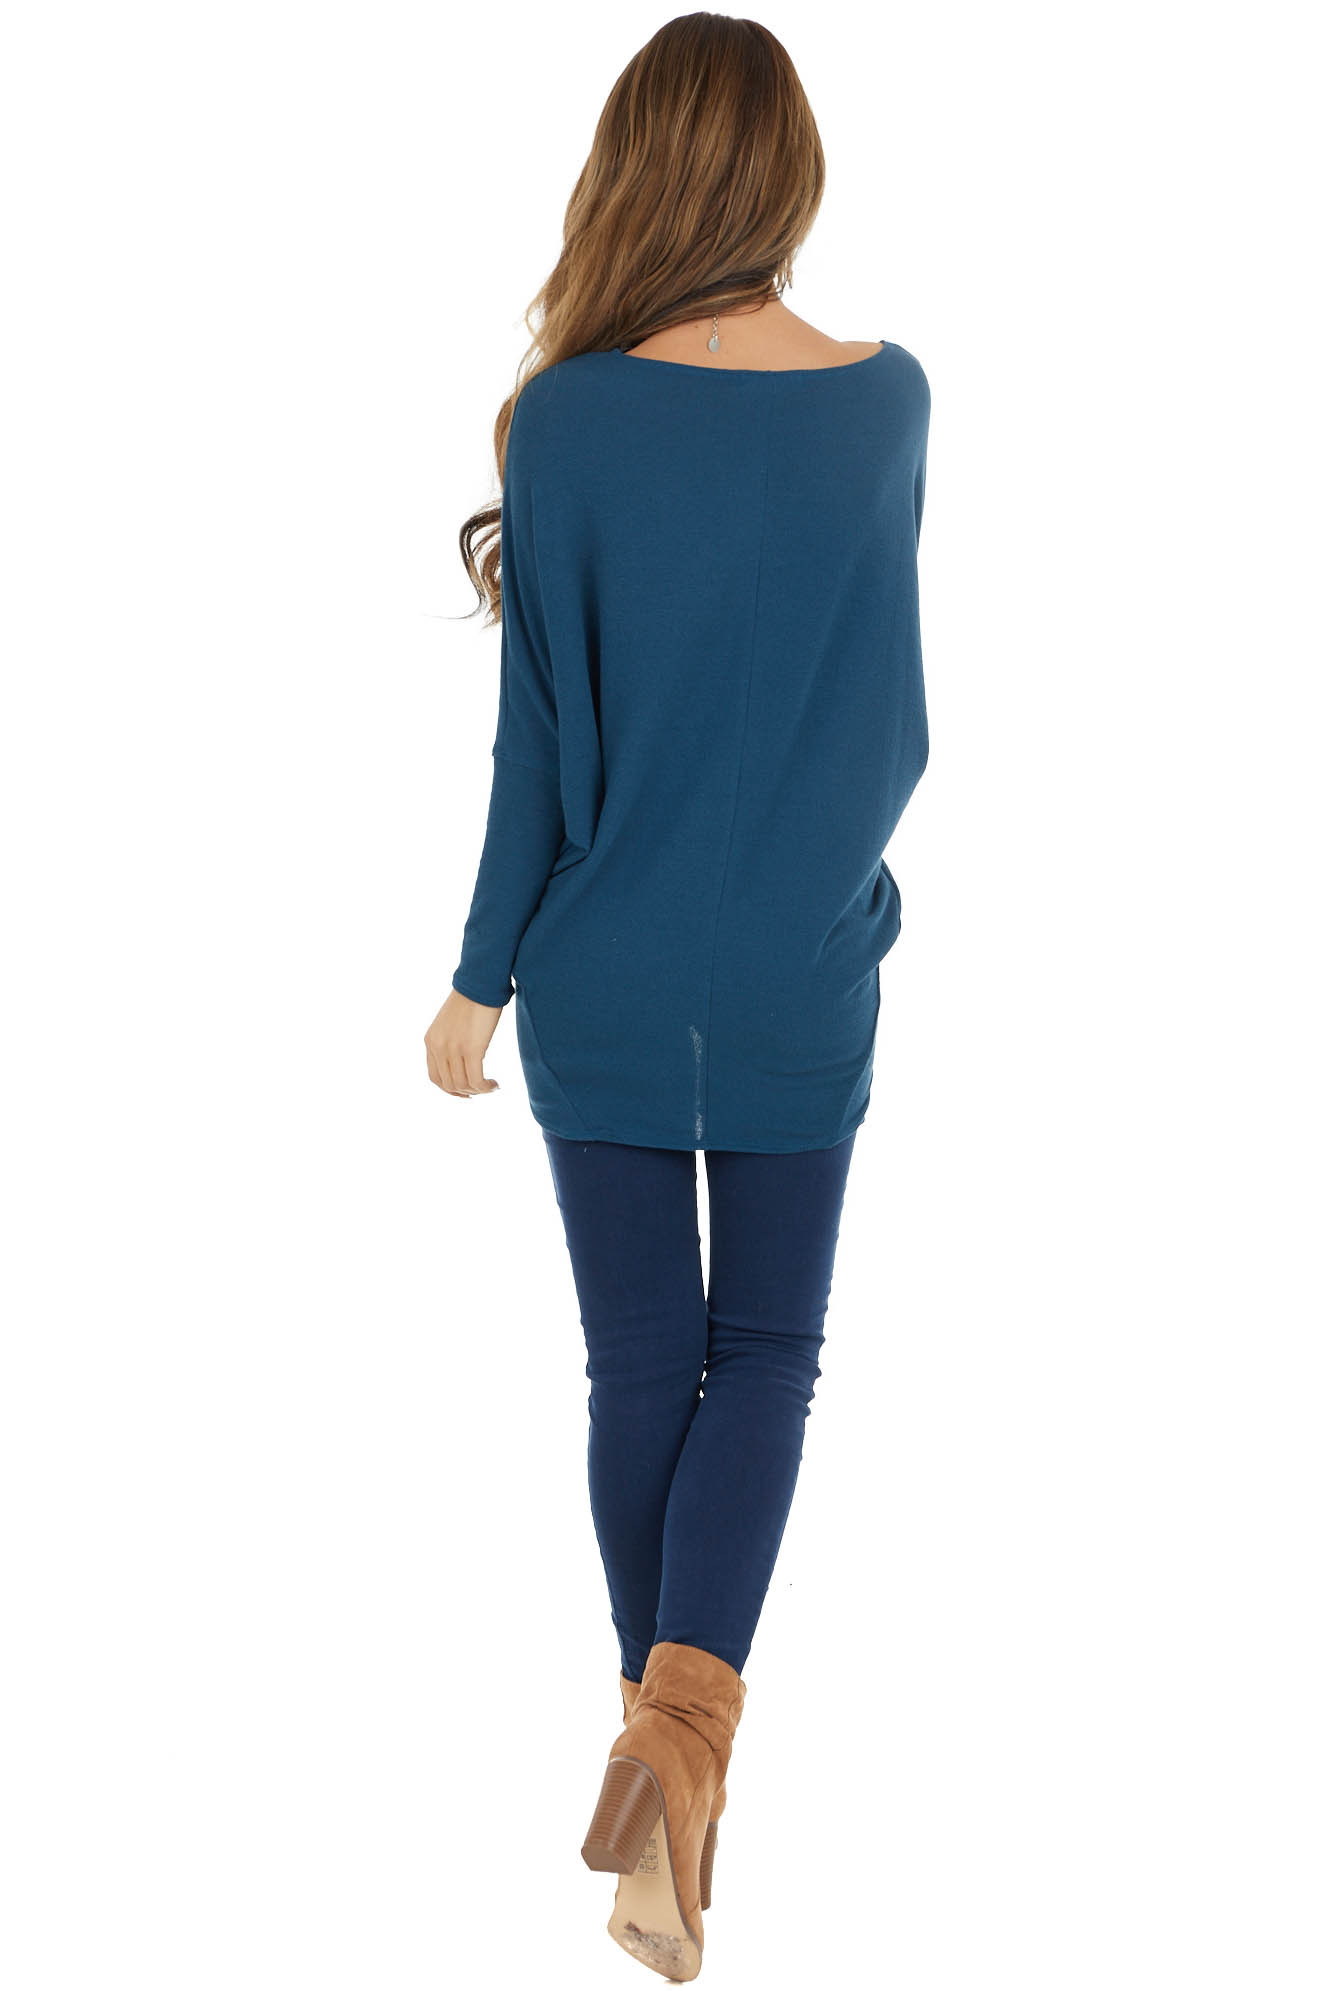 Teal Round Neck Knit Top with Long Dolman Sleeves